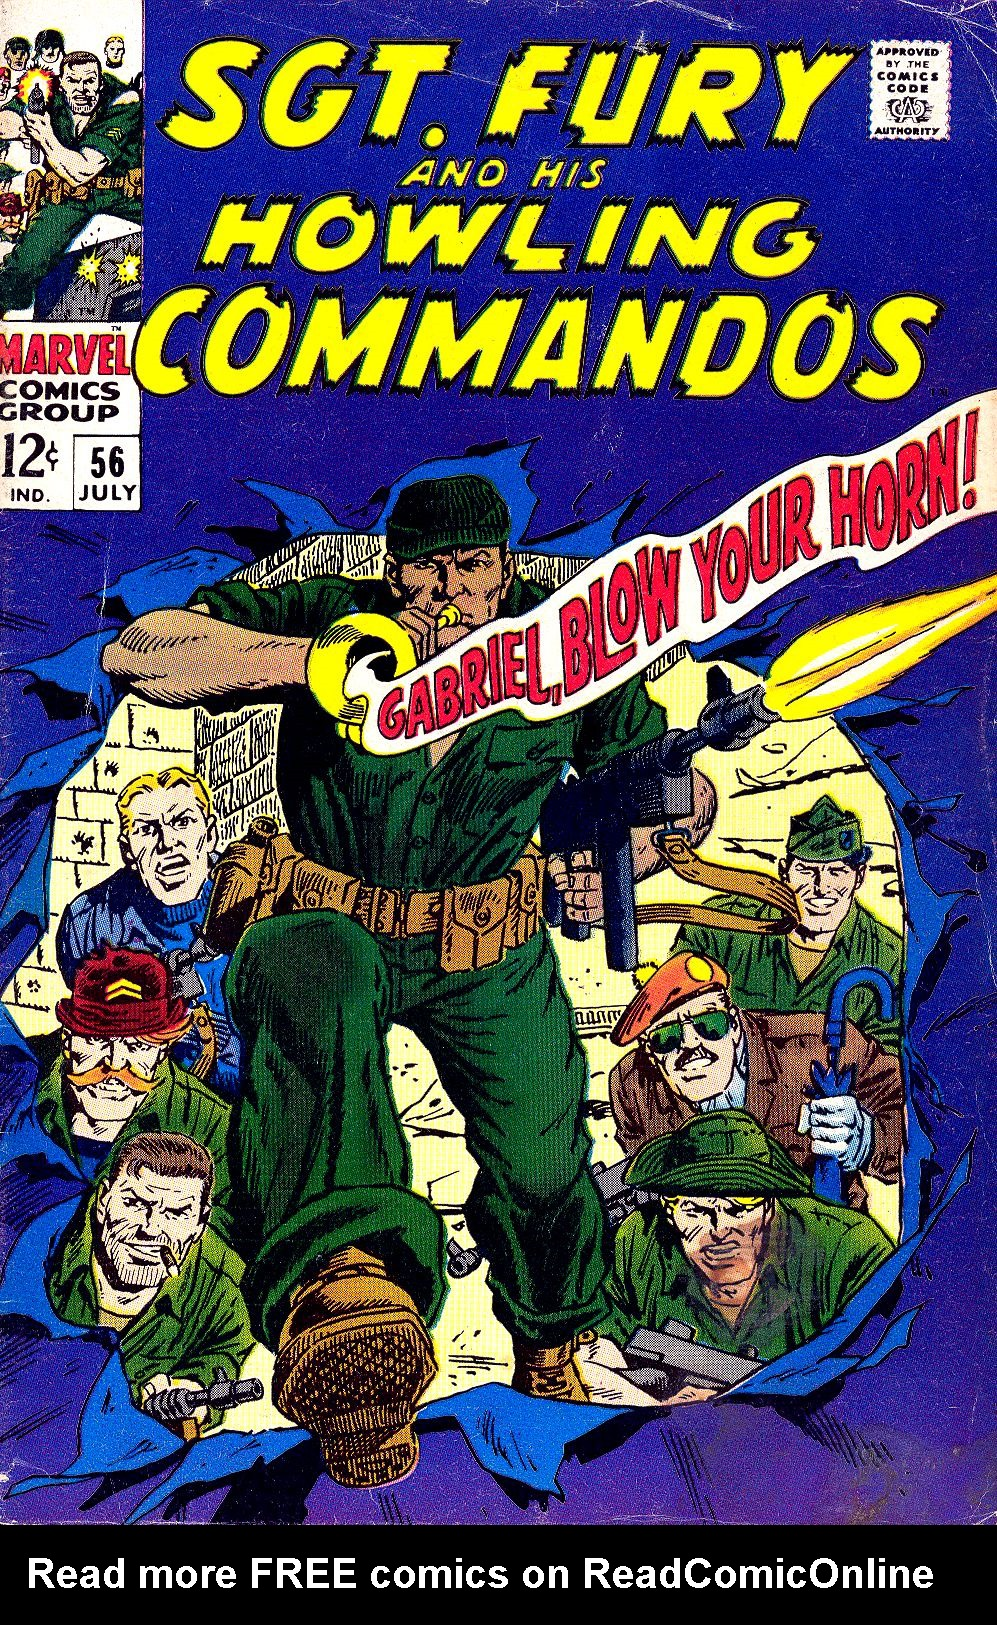 Read online Sgt. Fury comic -  Issue #56 - 1